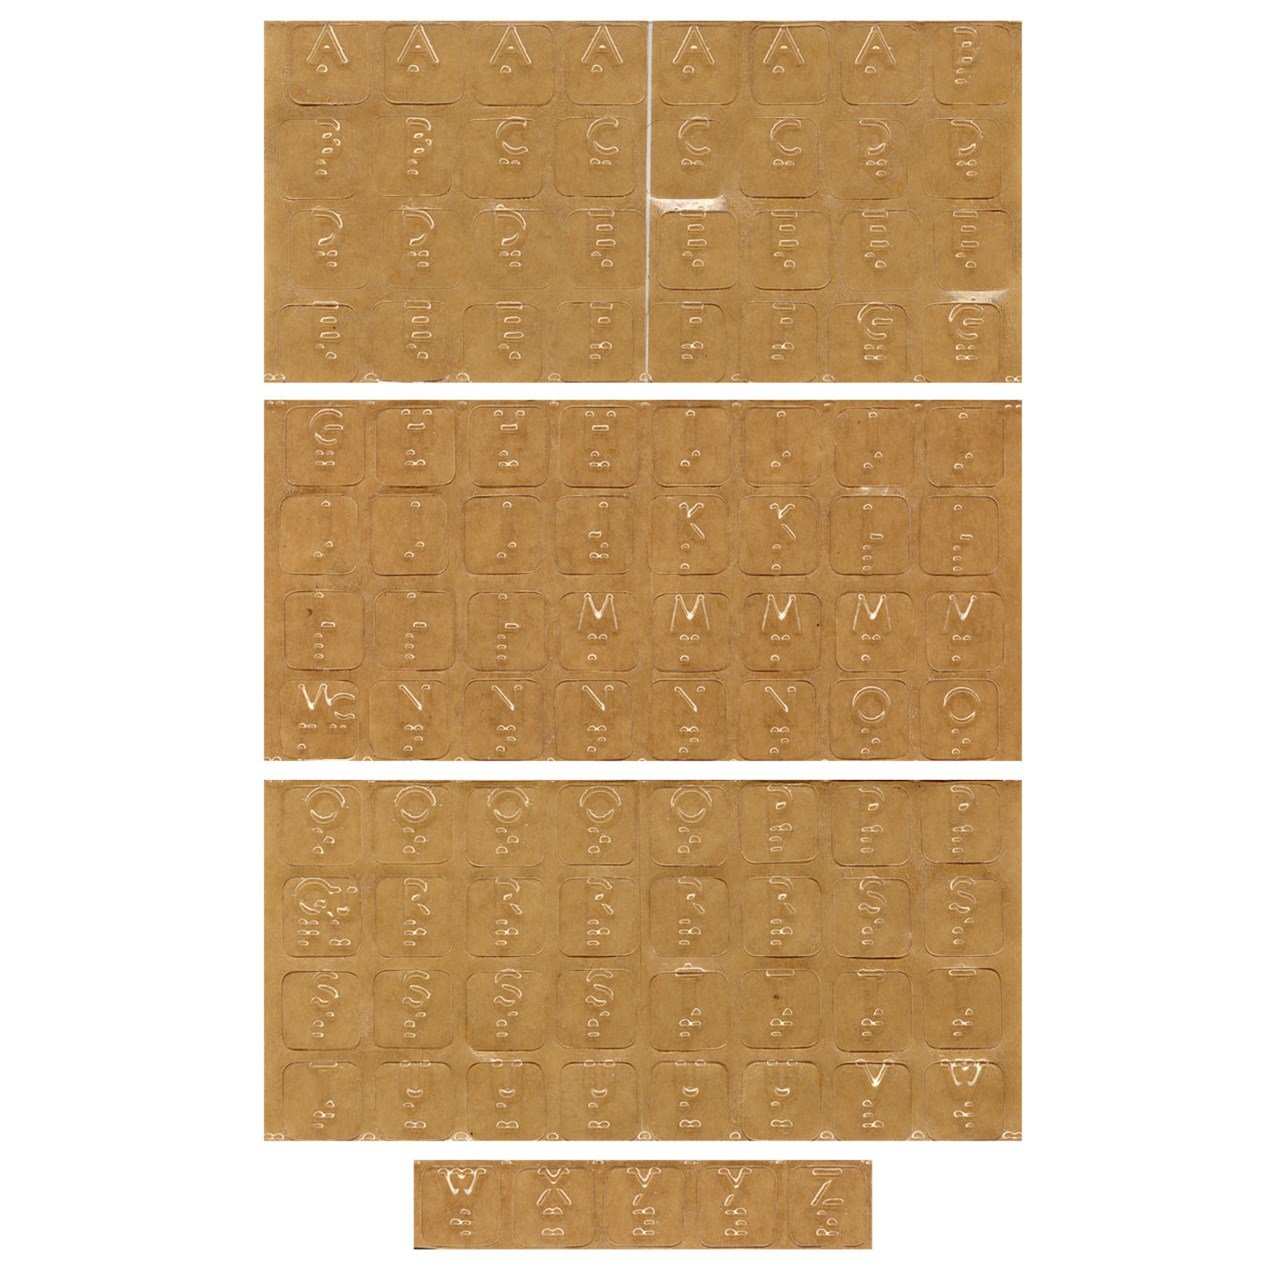 Touch to See Alphabet Braille Tactile Identification Labels